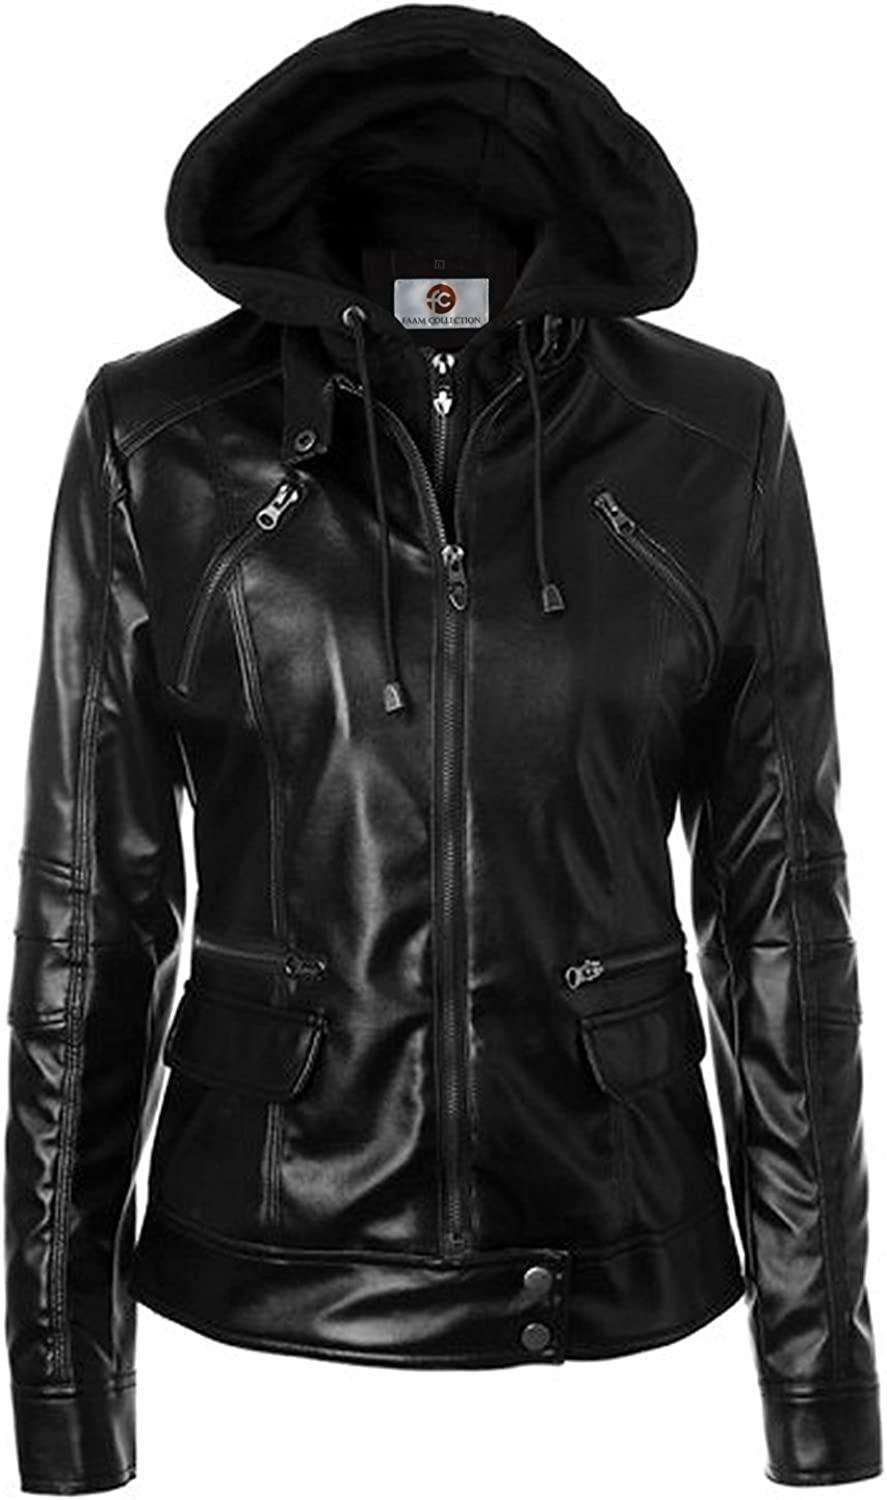 Faam Collection Special Crafted Lambskin Leather Jacket with Hood for Women Black